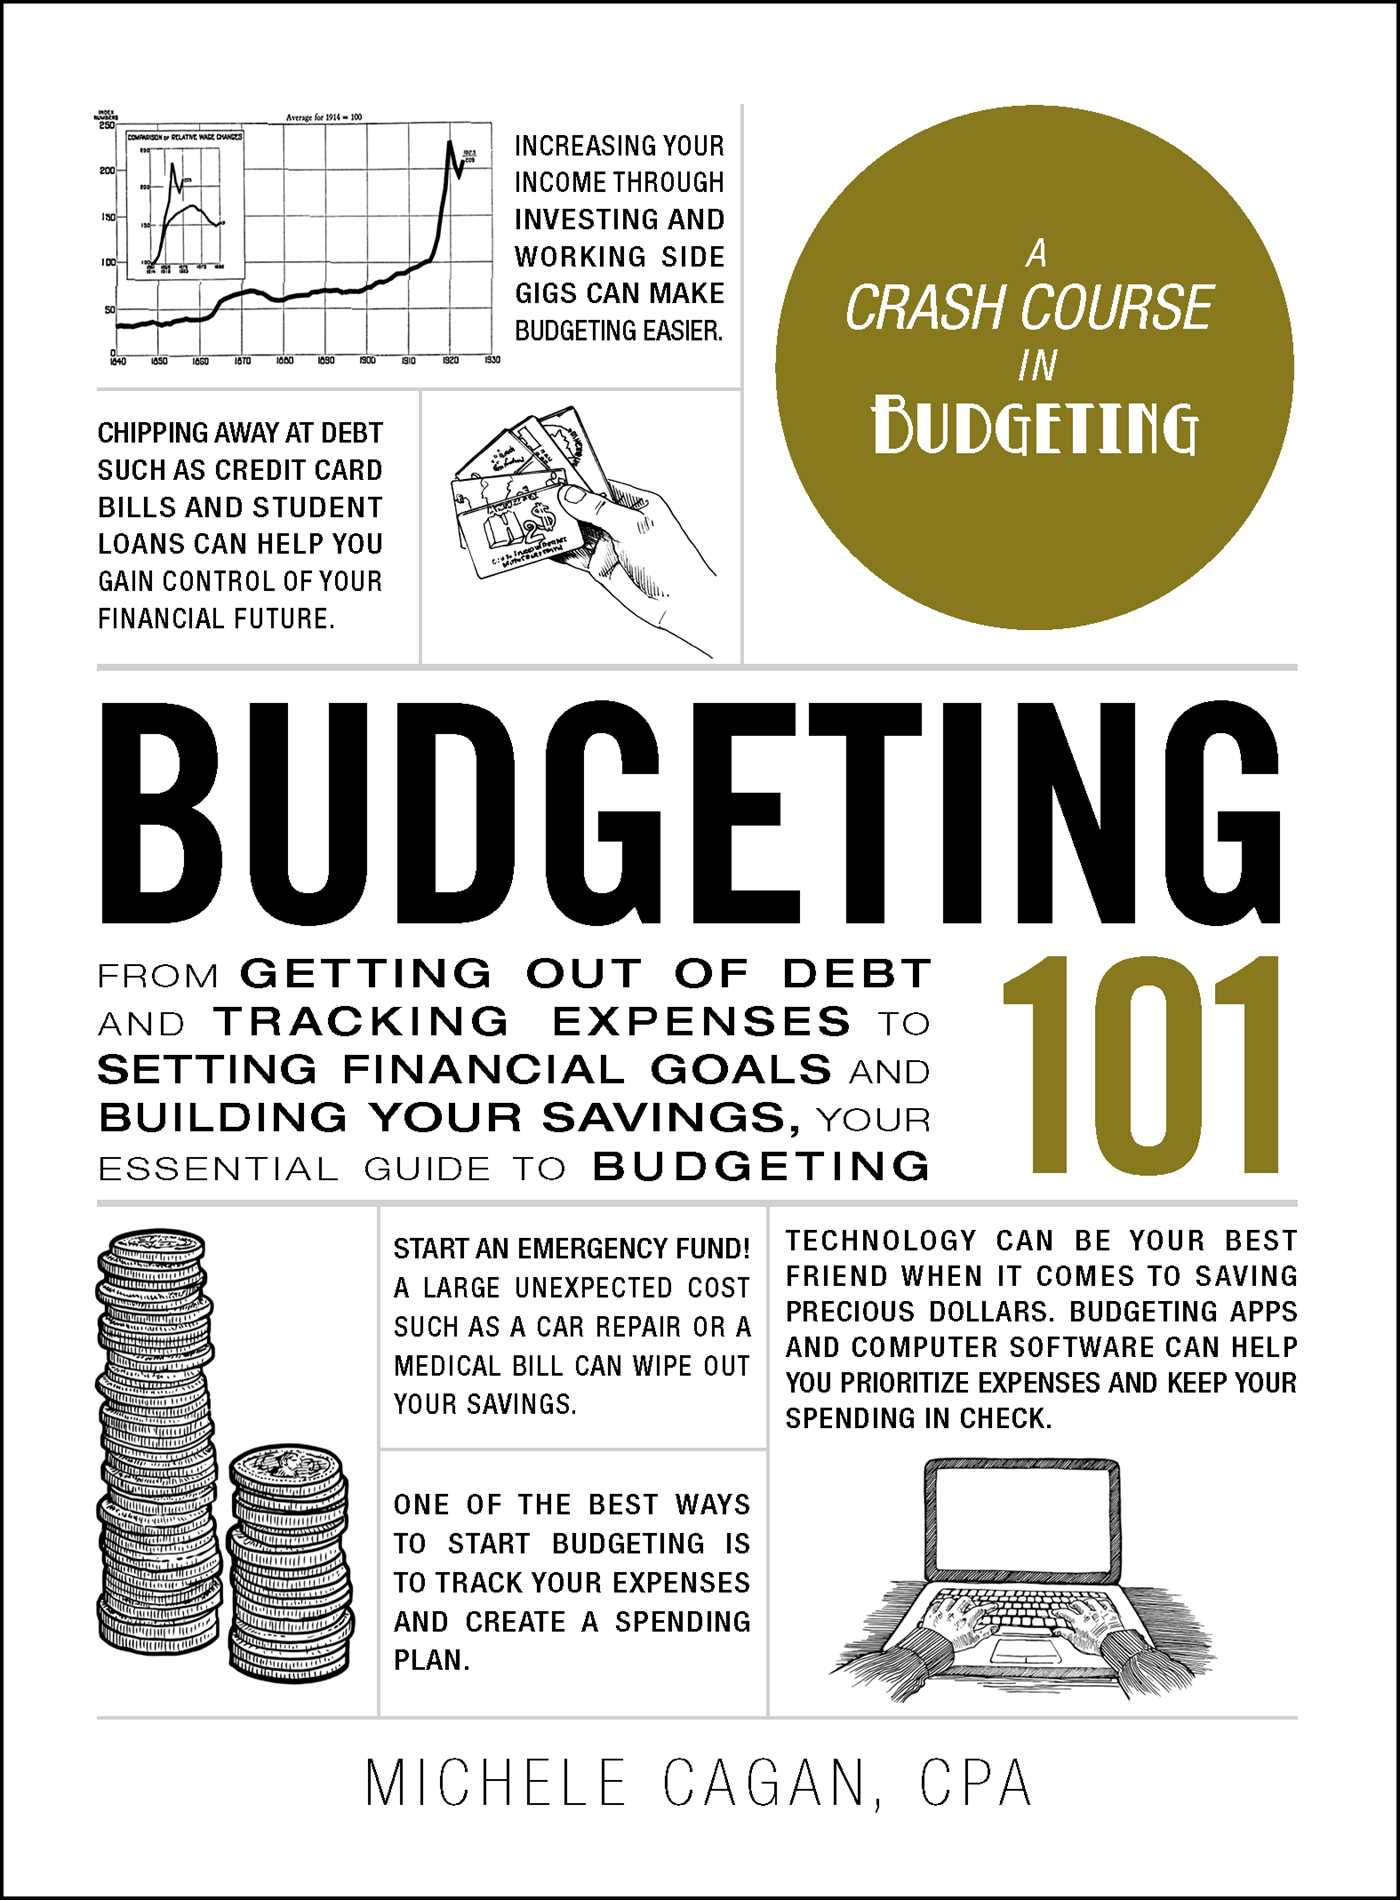 a5e8bde7cd75 Book Cover Image (jpg)  Budgeting 101